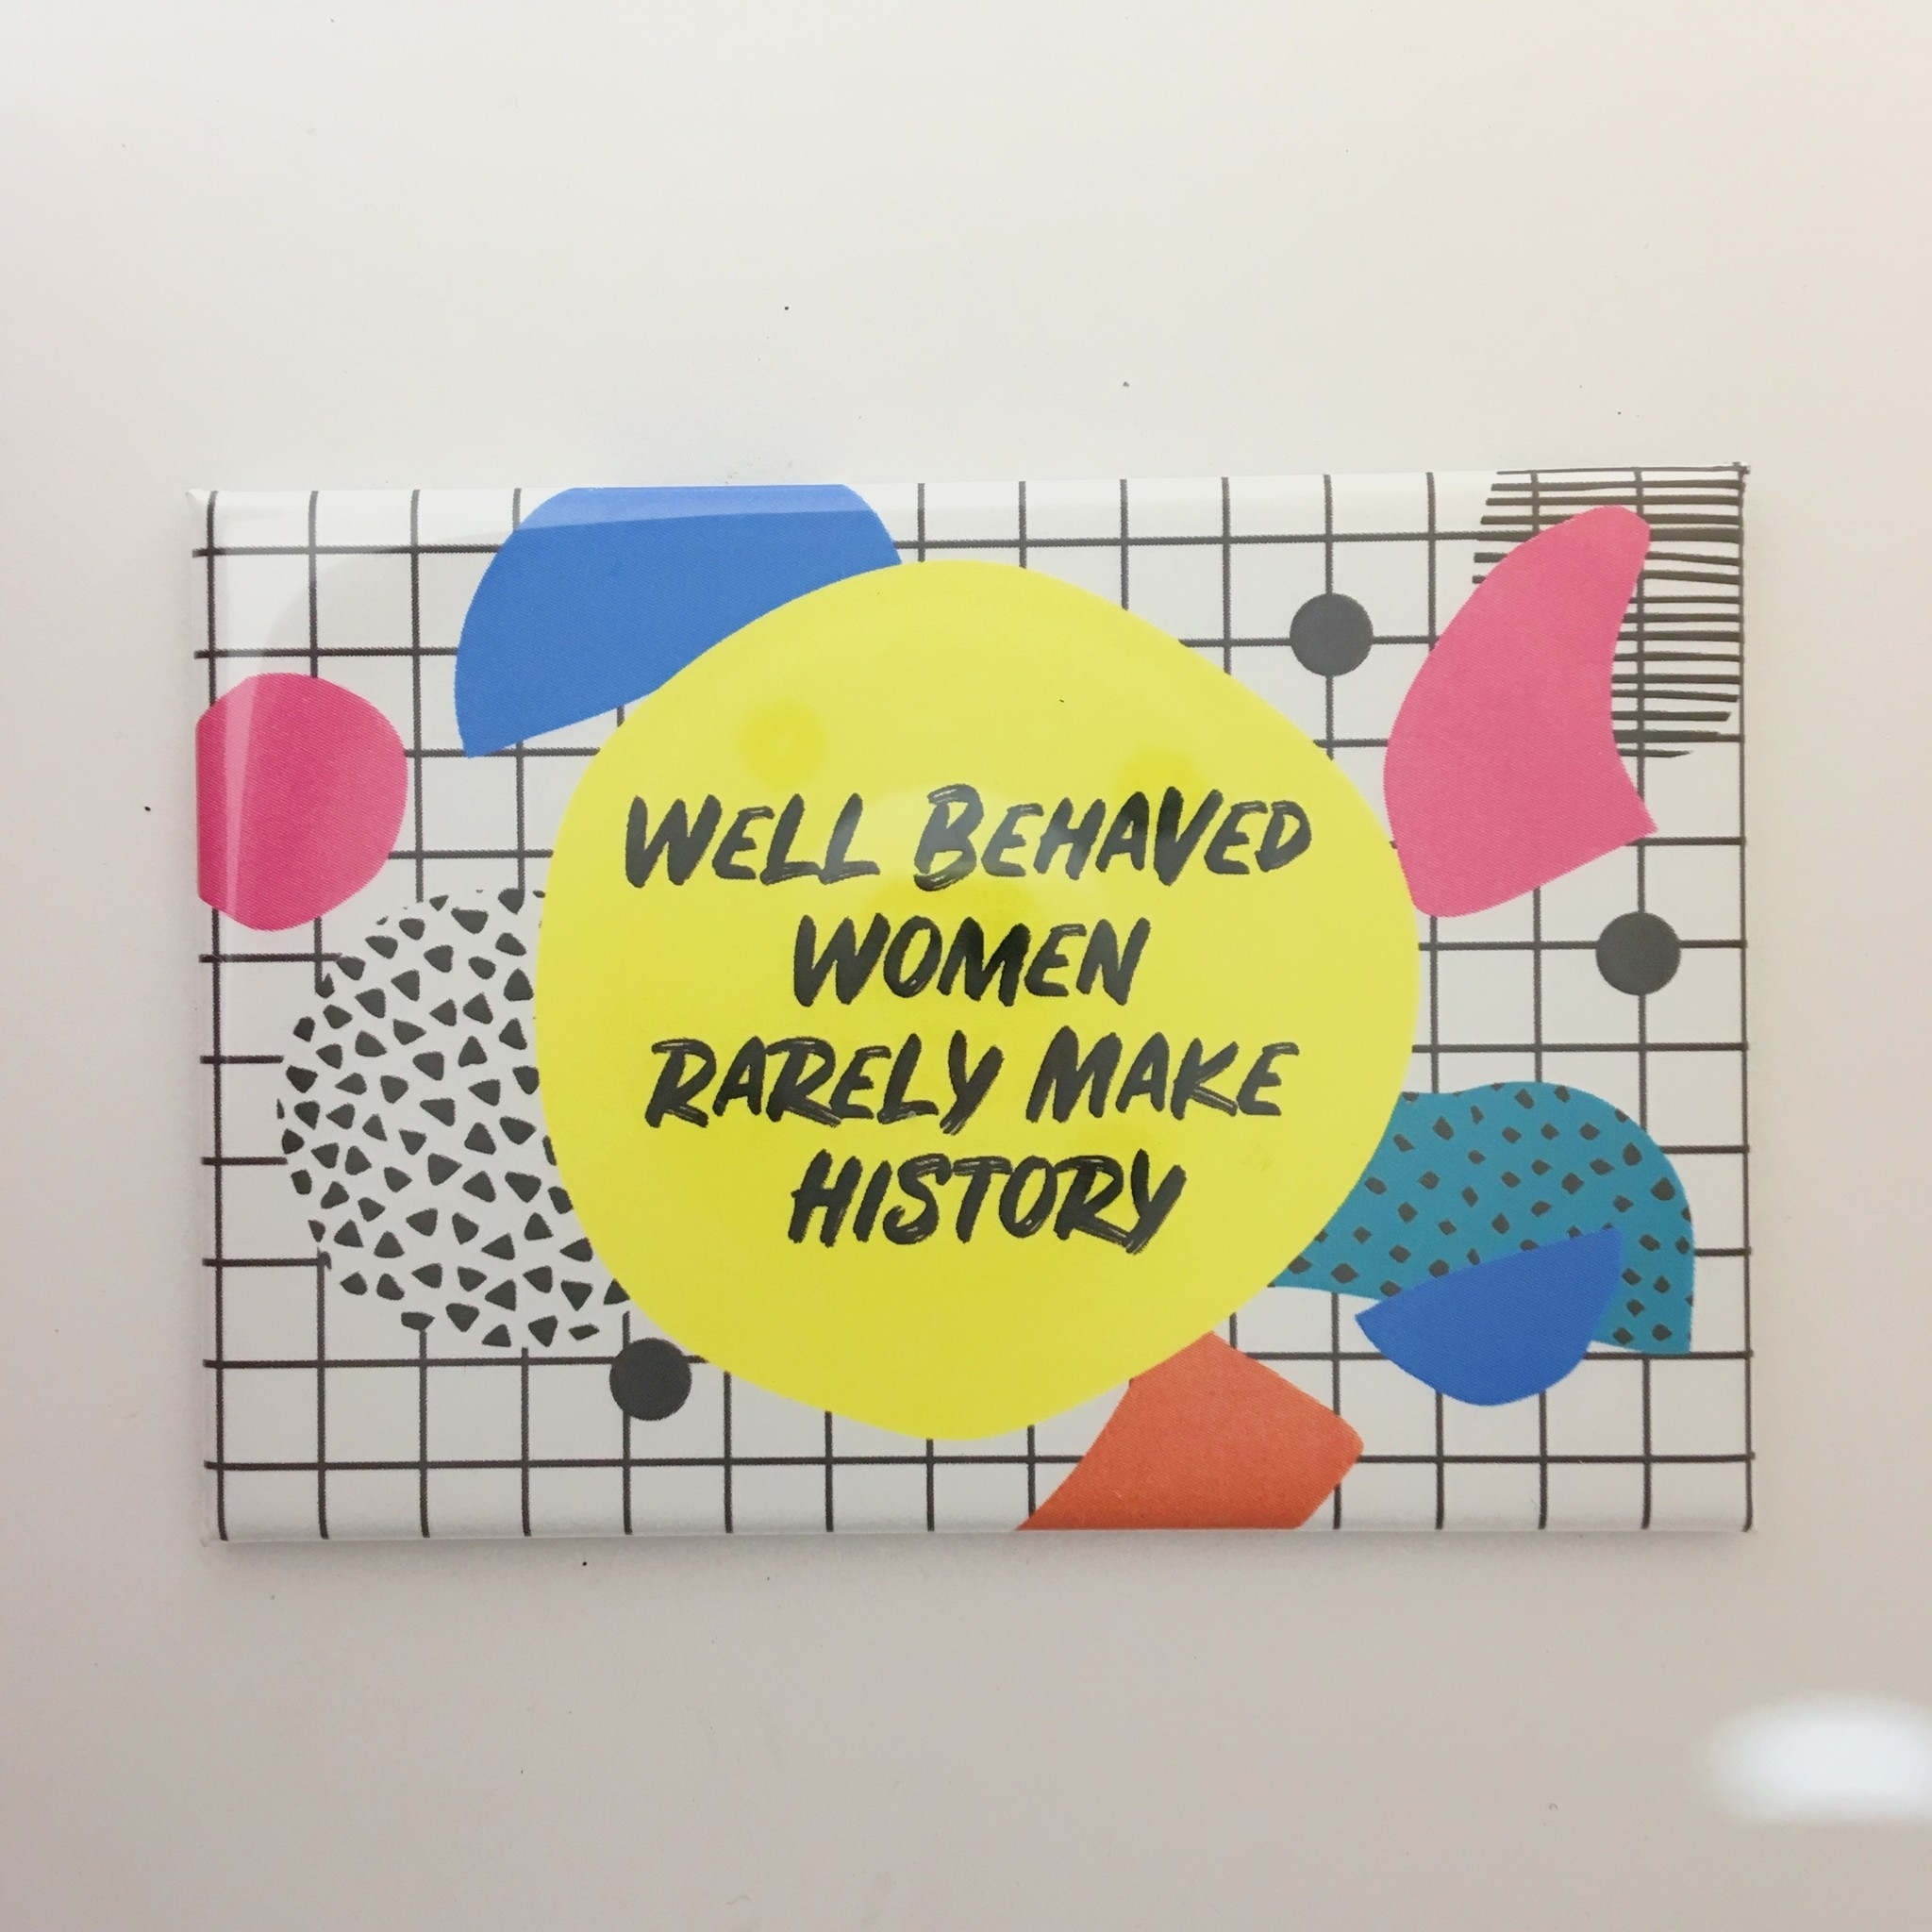 The Found Well Behaved Women Magnet